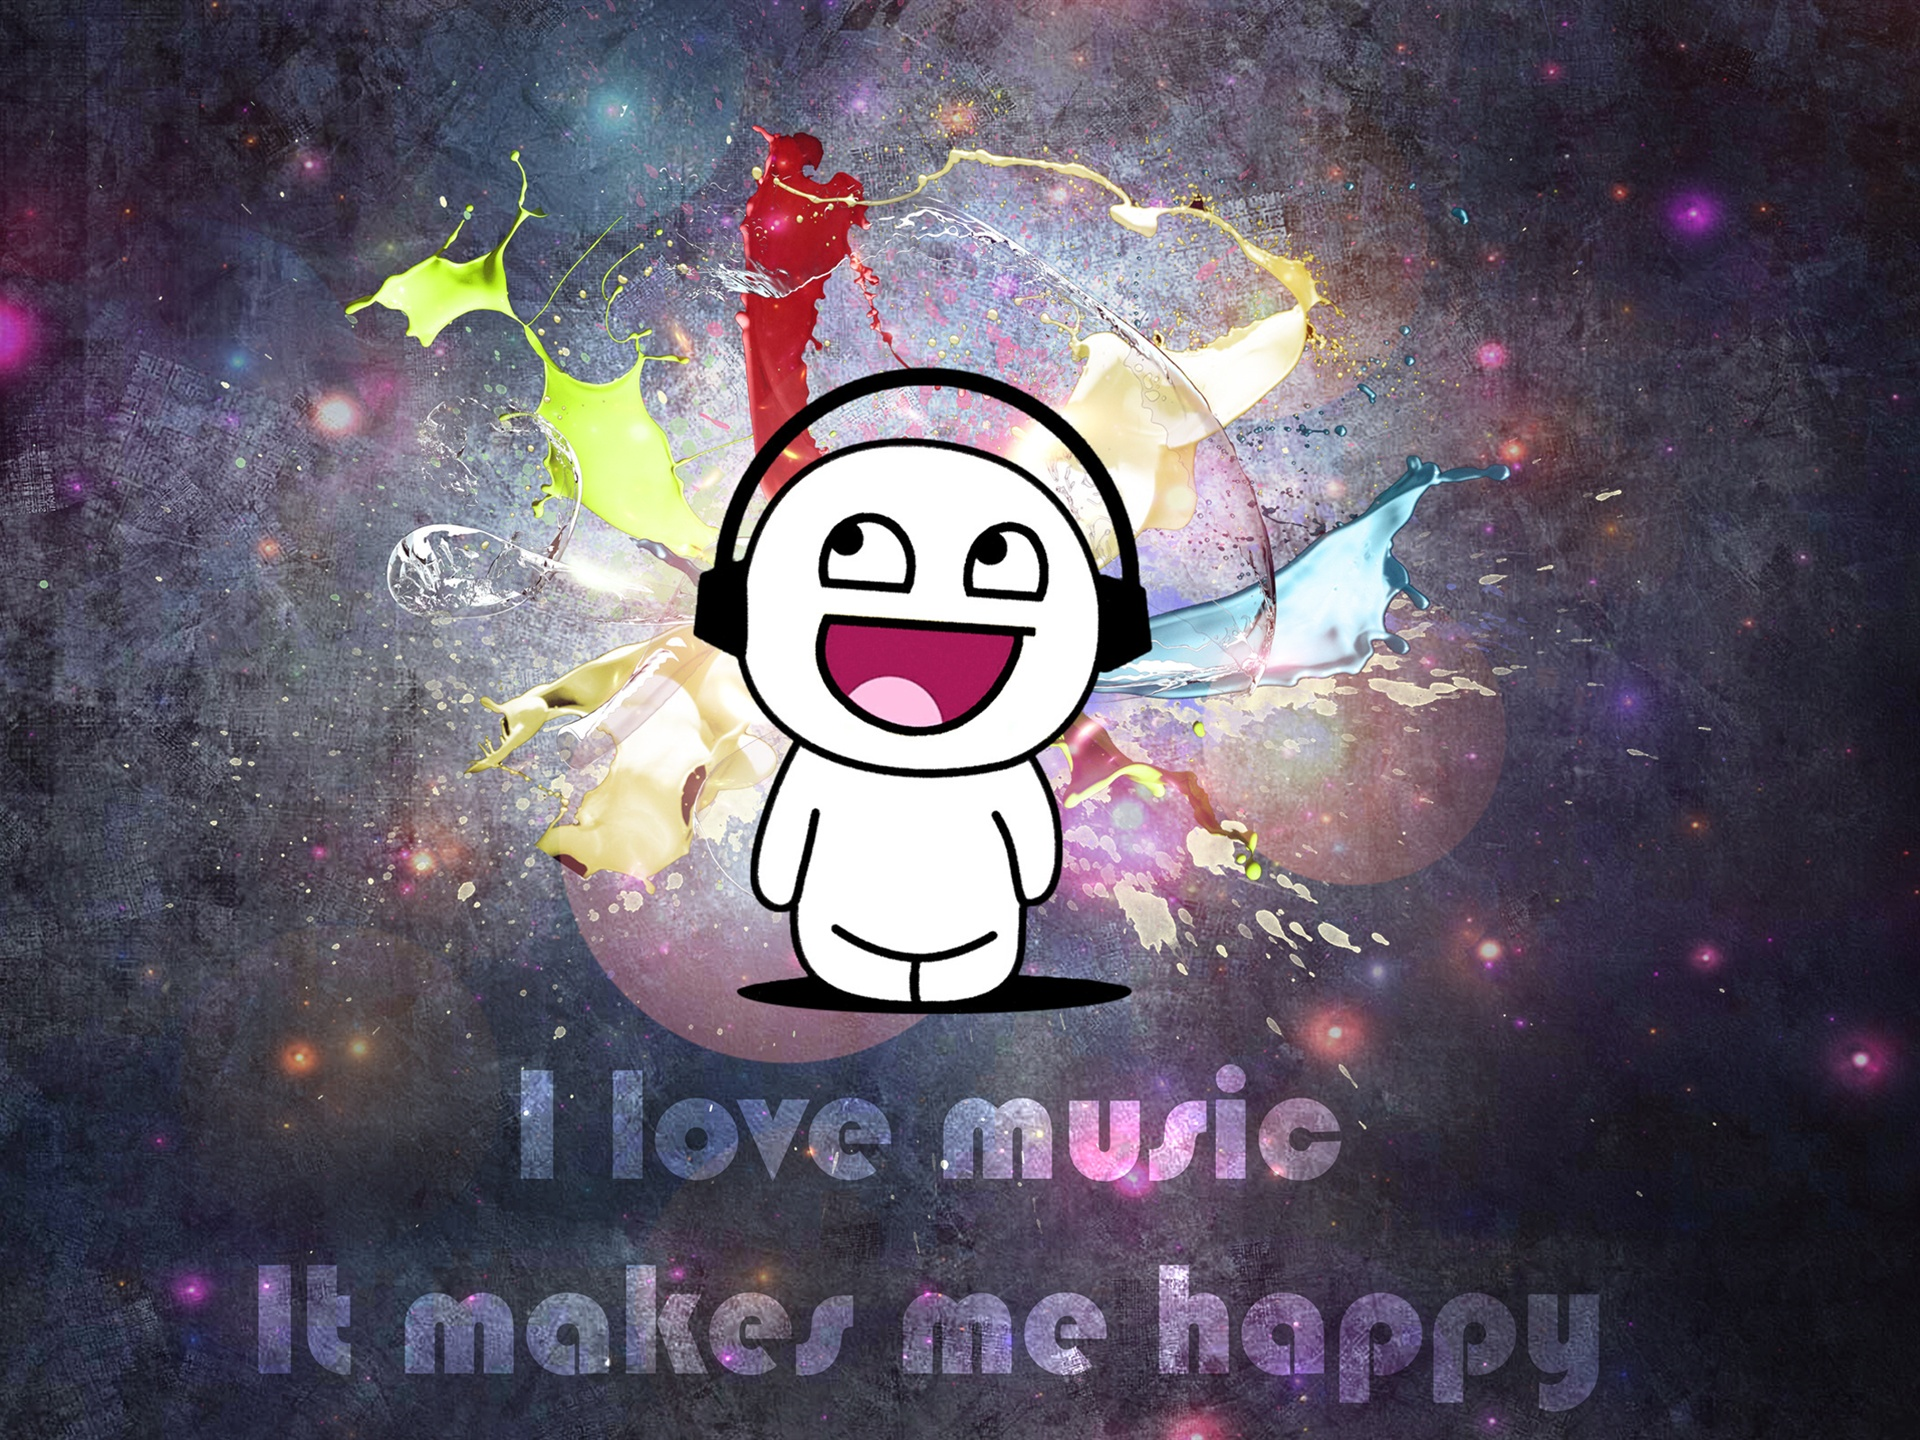 wallpaper i love music, it makes me happy 2560x1600 hd picture, image